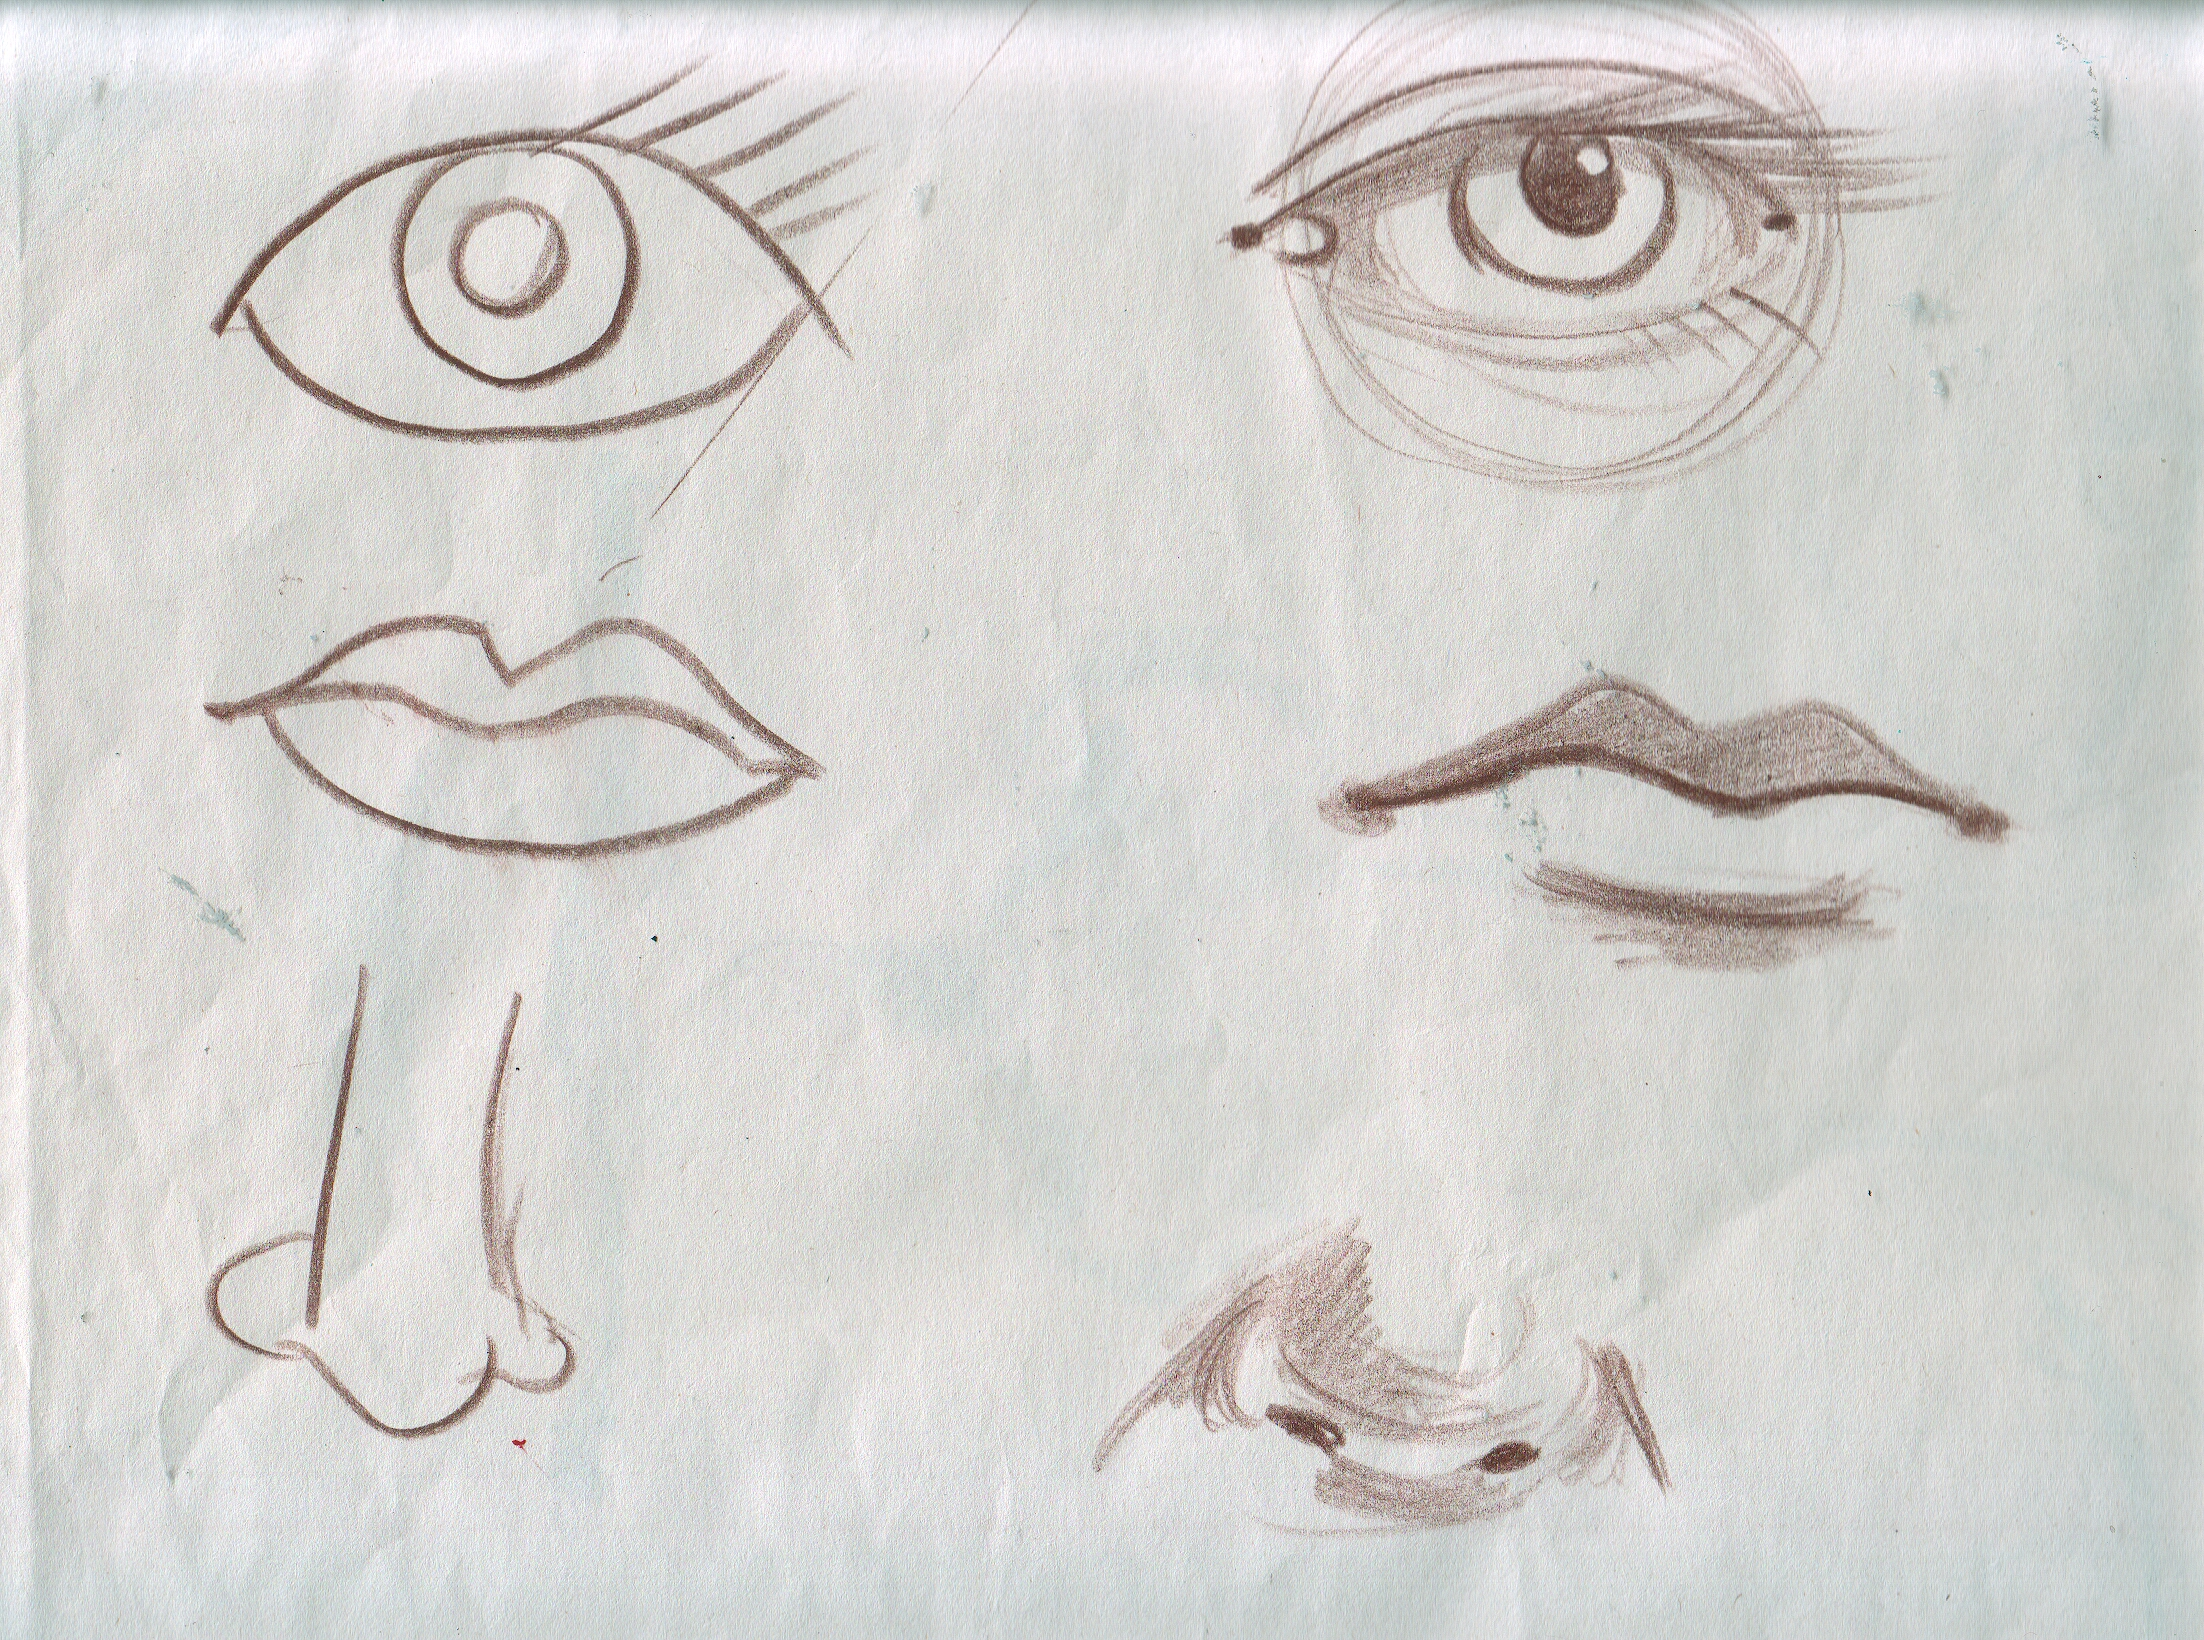 kat s portrait tutorial part 4 of 8 eyes nose mouth using shadow